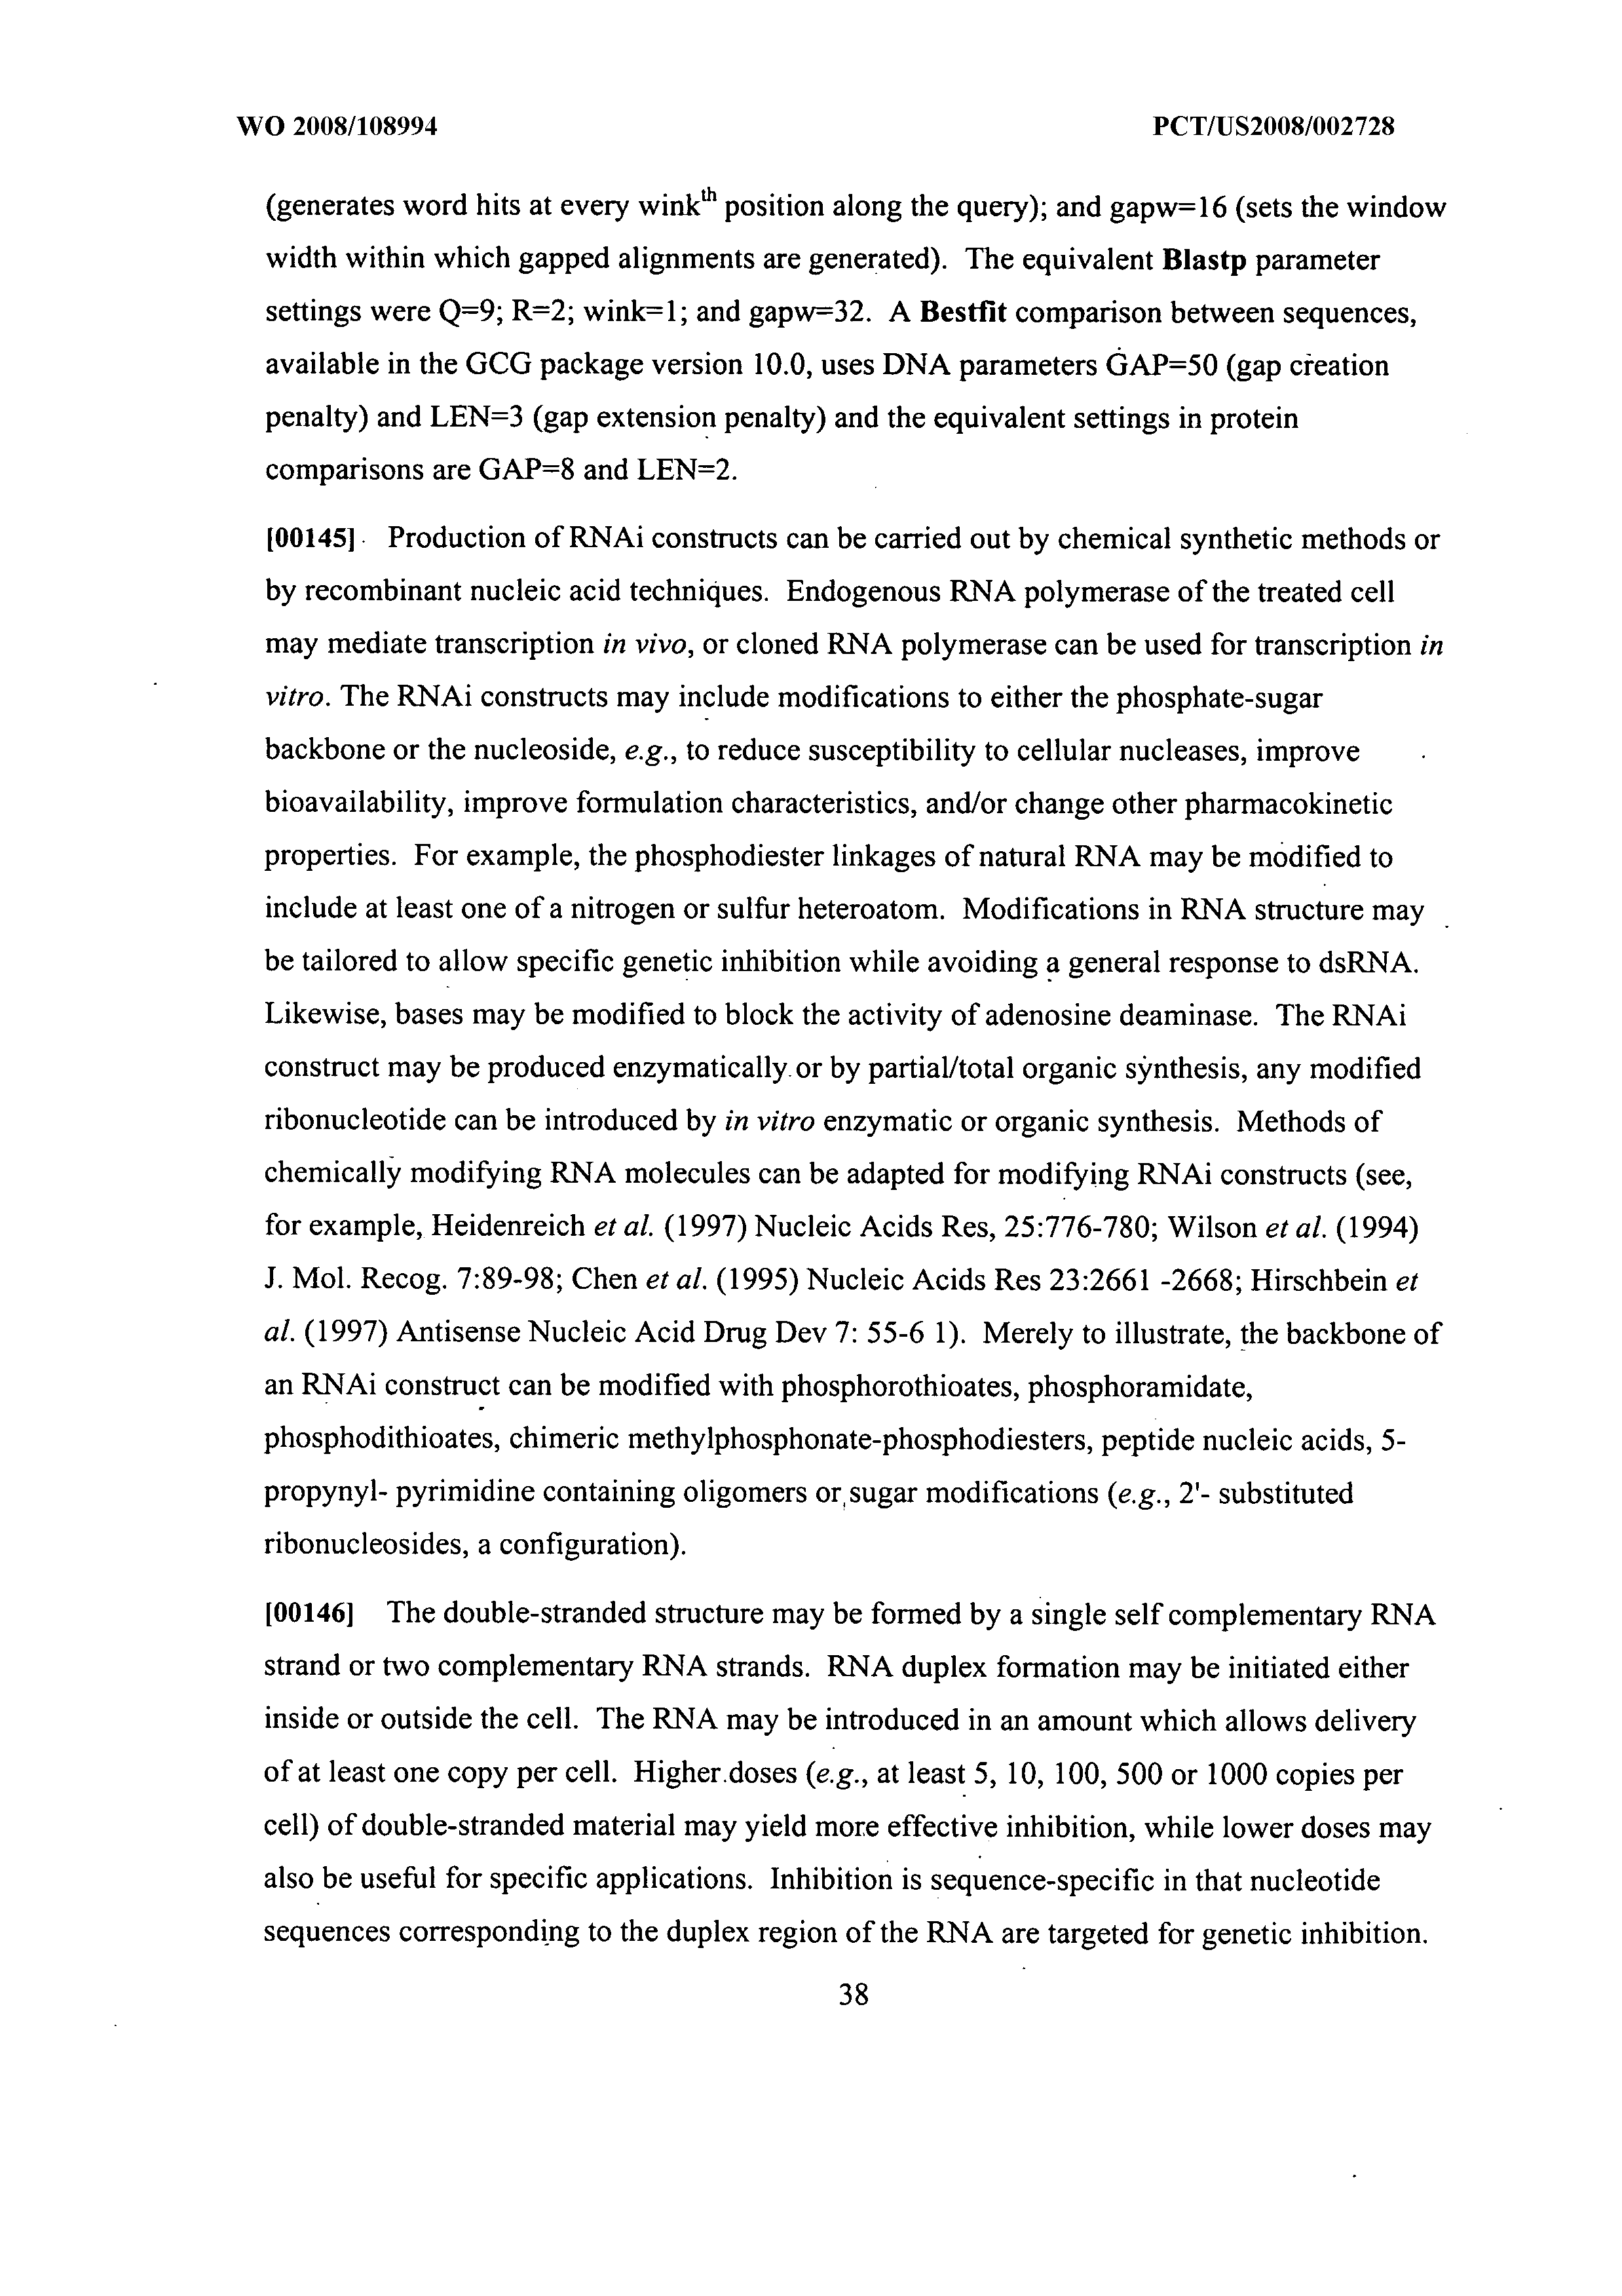 WO 2008/108994 A1 - Trp/his Exchange And Kynurenine Induced Trp